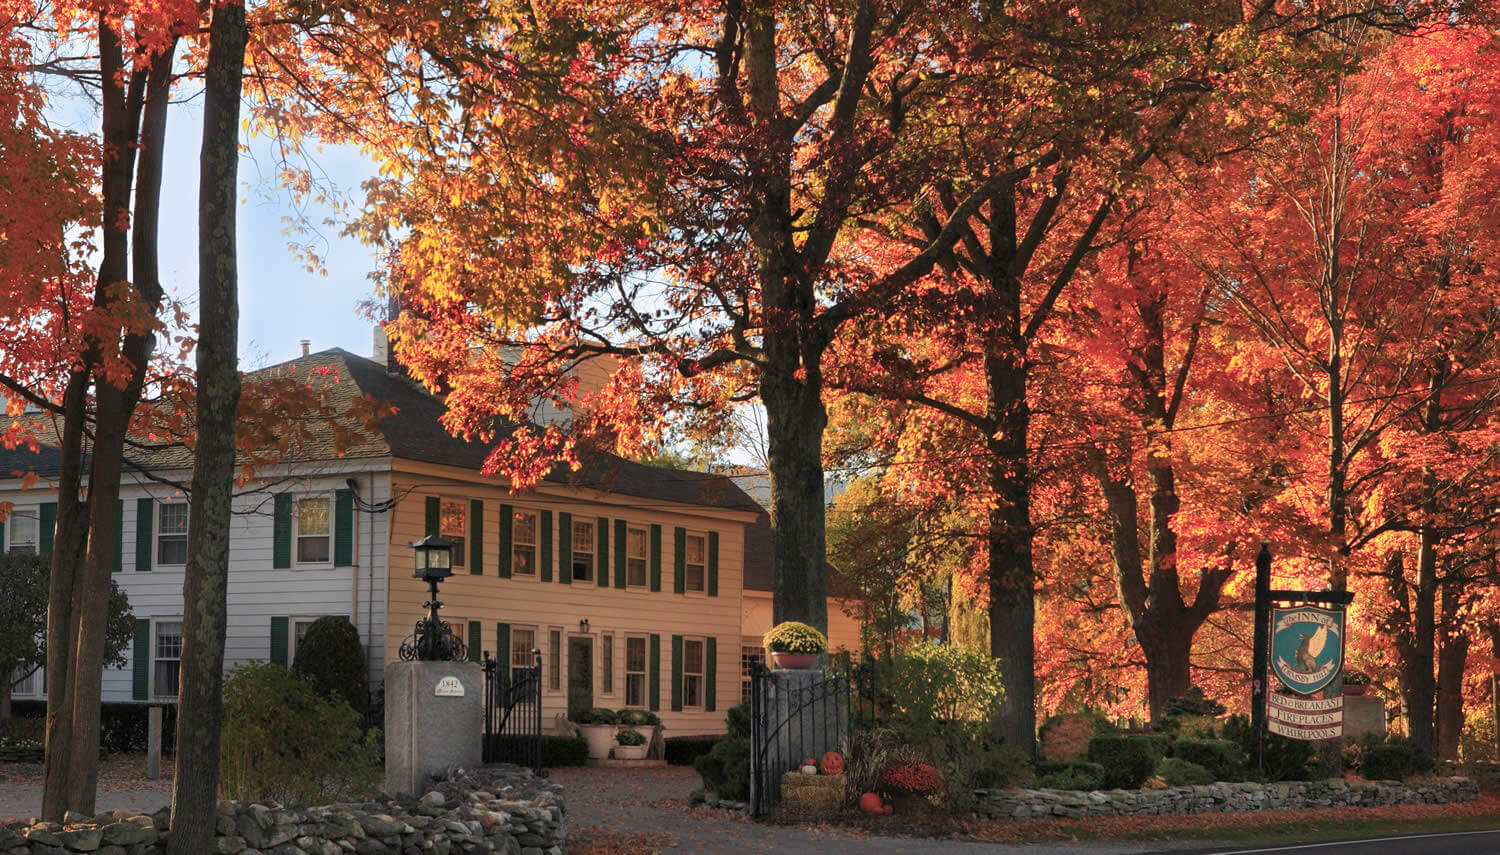 Large white house with black roof and shutters set amid glowing fall foliage.